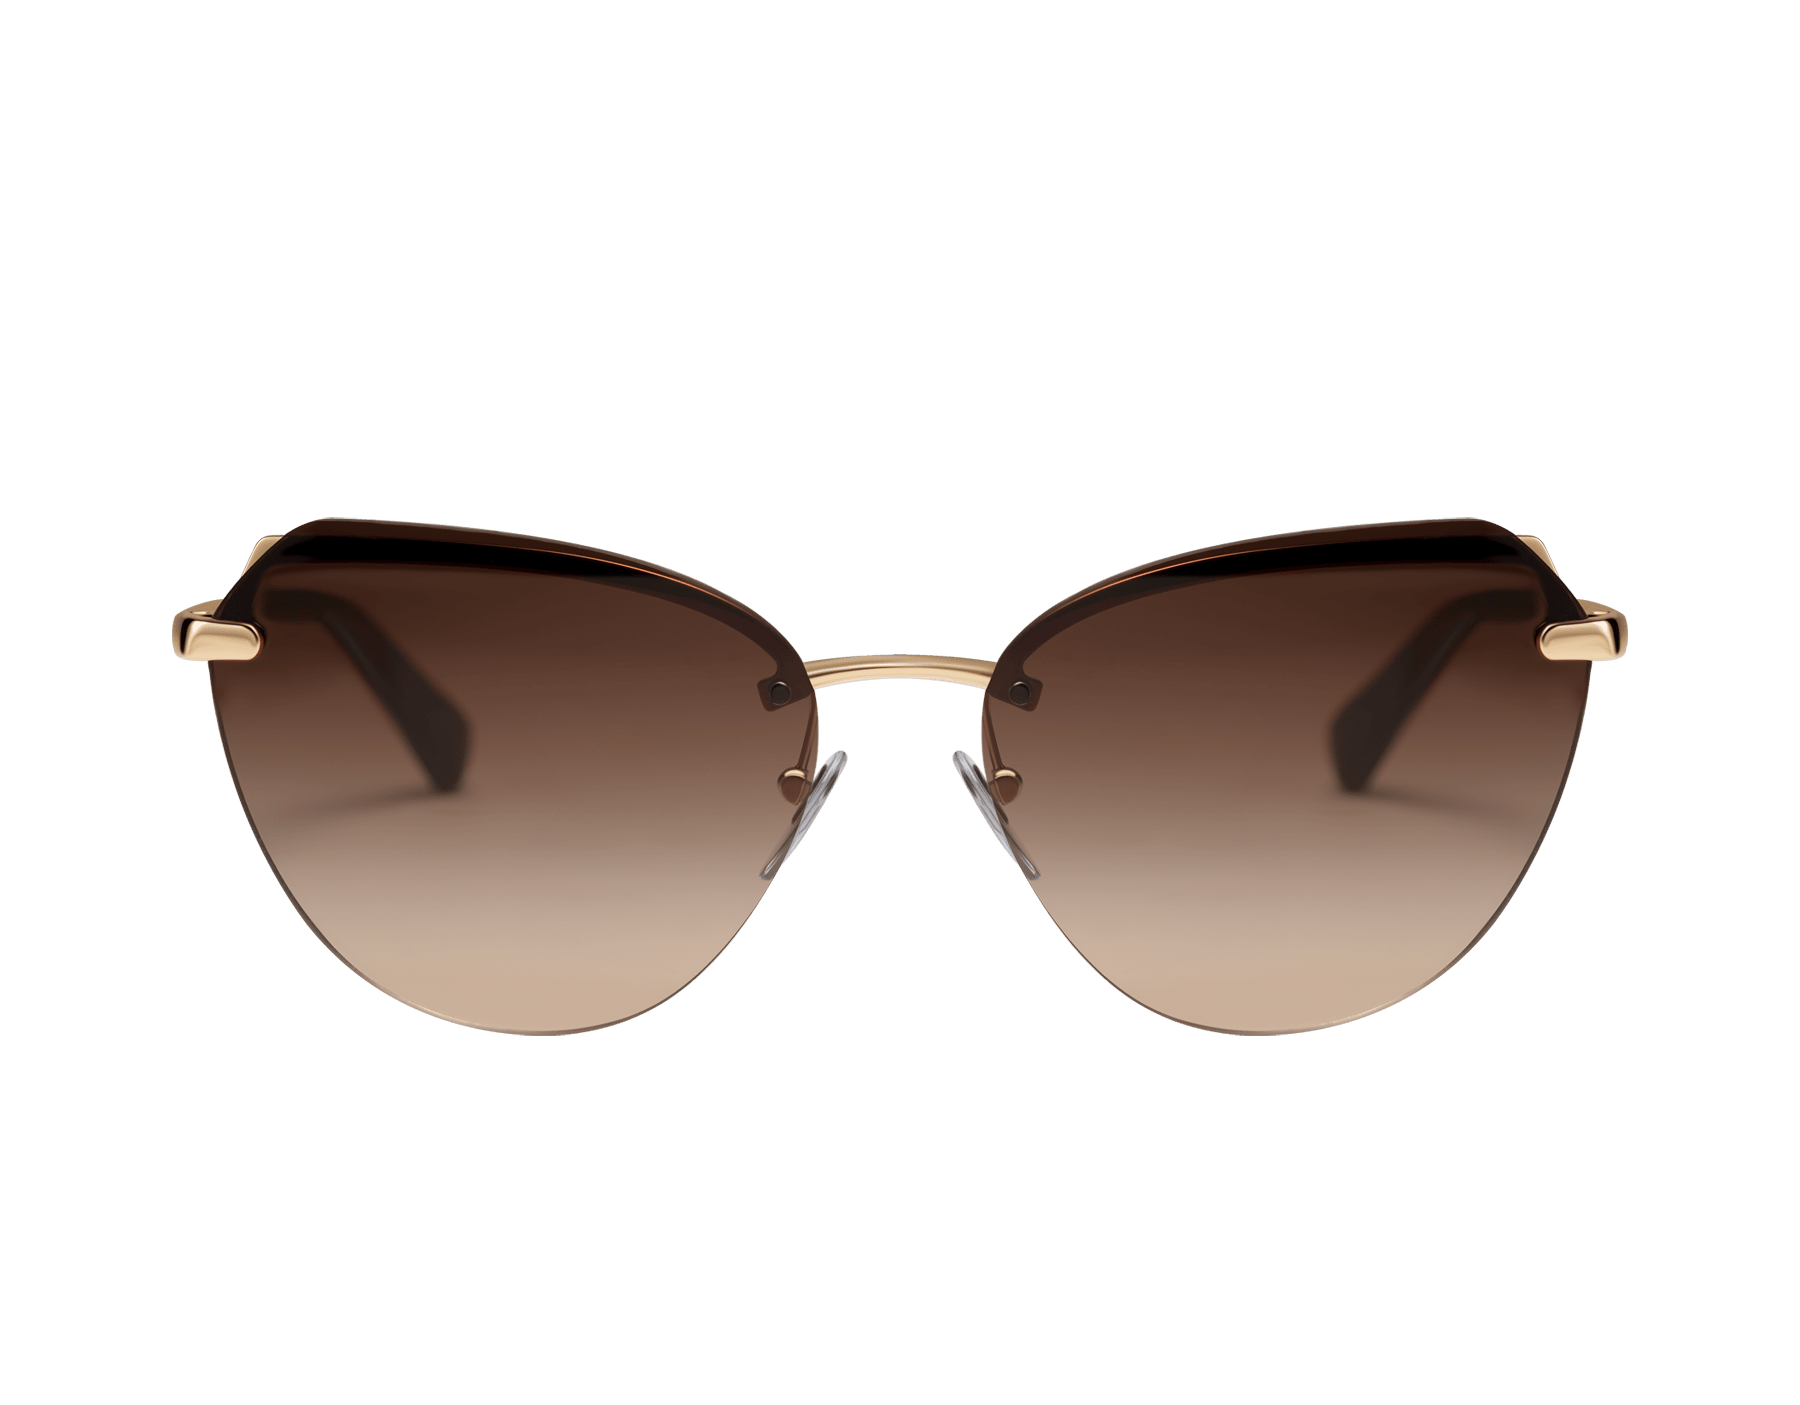 Bulgari Le Gemme Serpenti gold plated cat-eye sunglasses with mother-of-pearl inserts. 903906 image 2